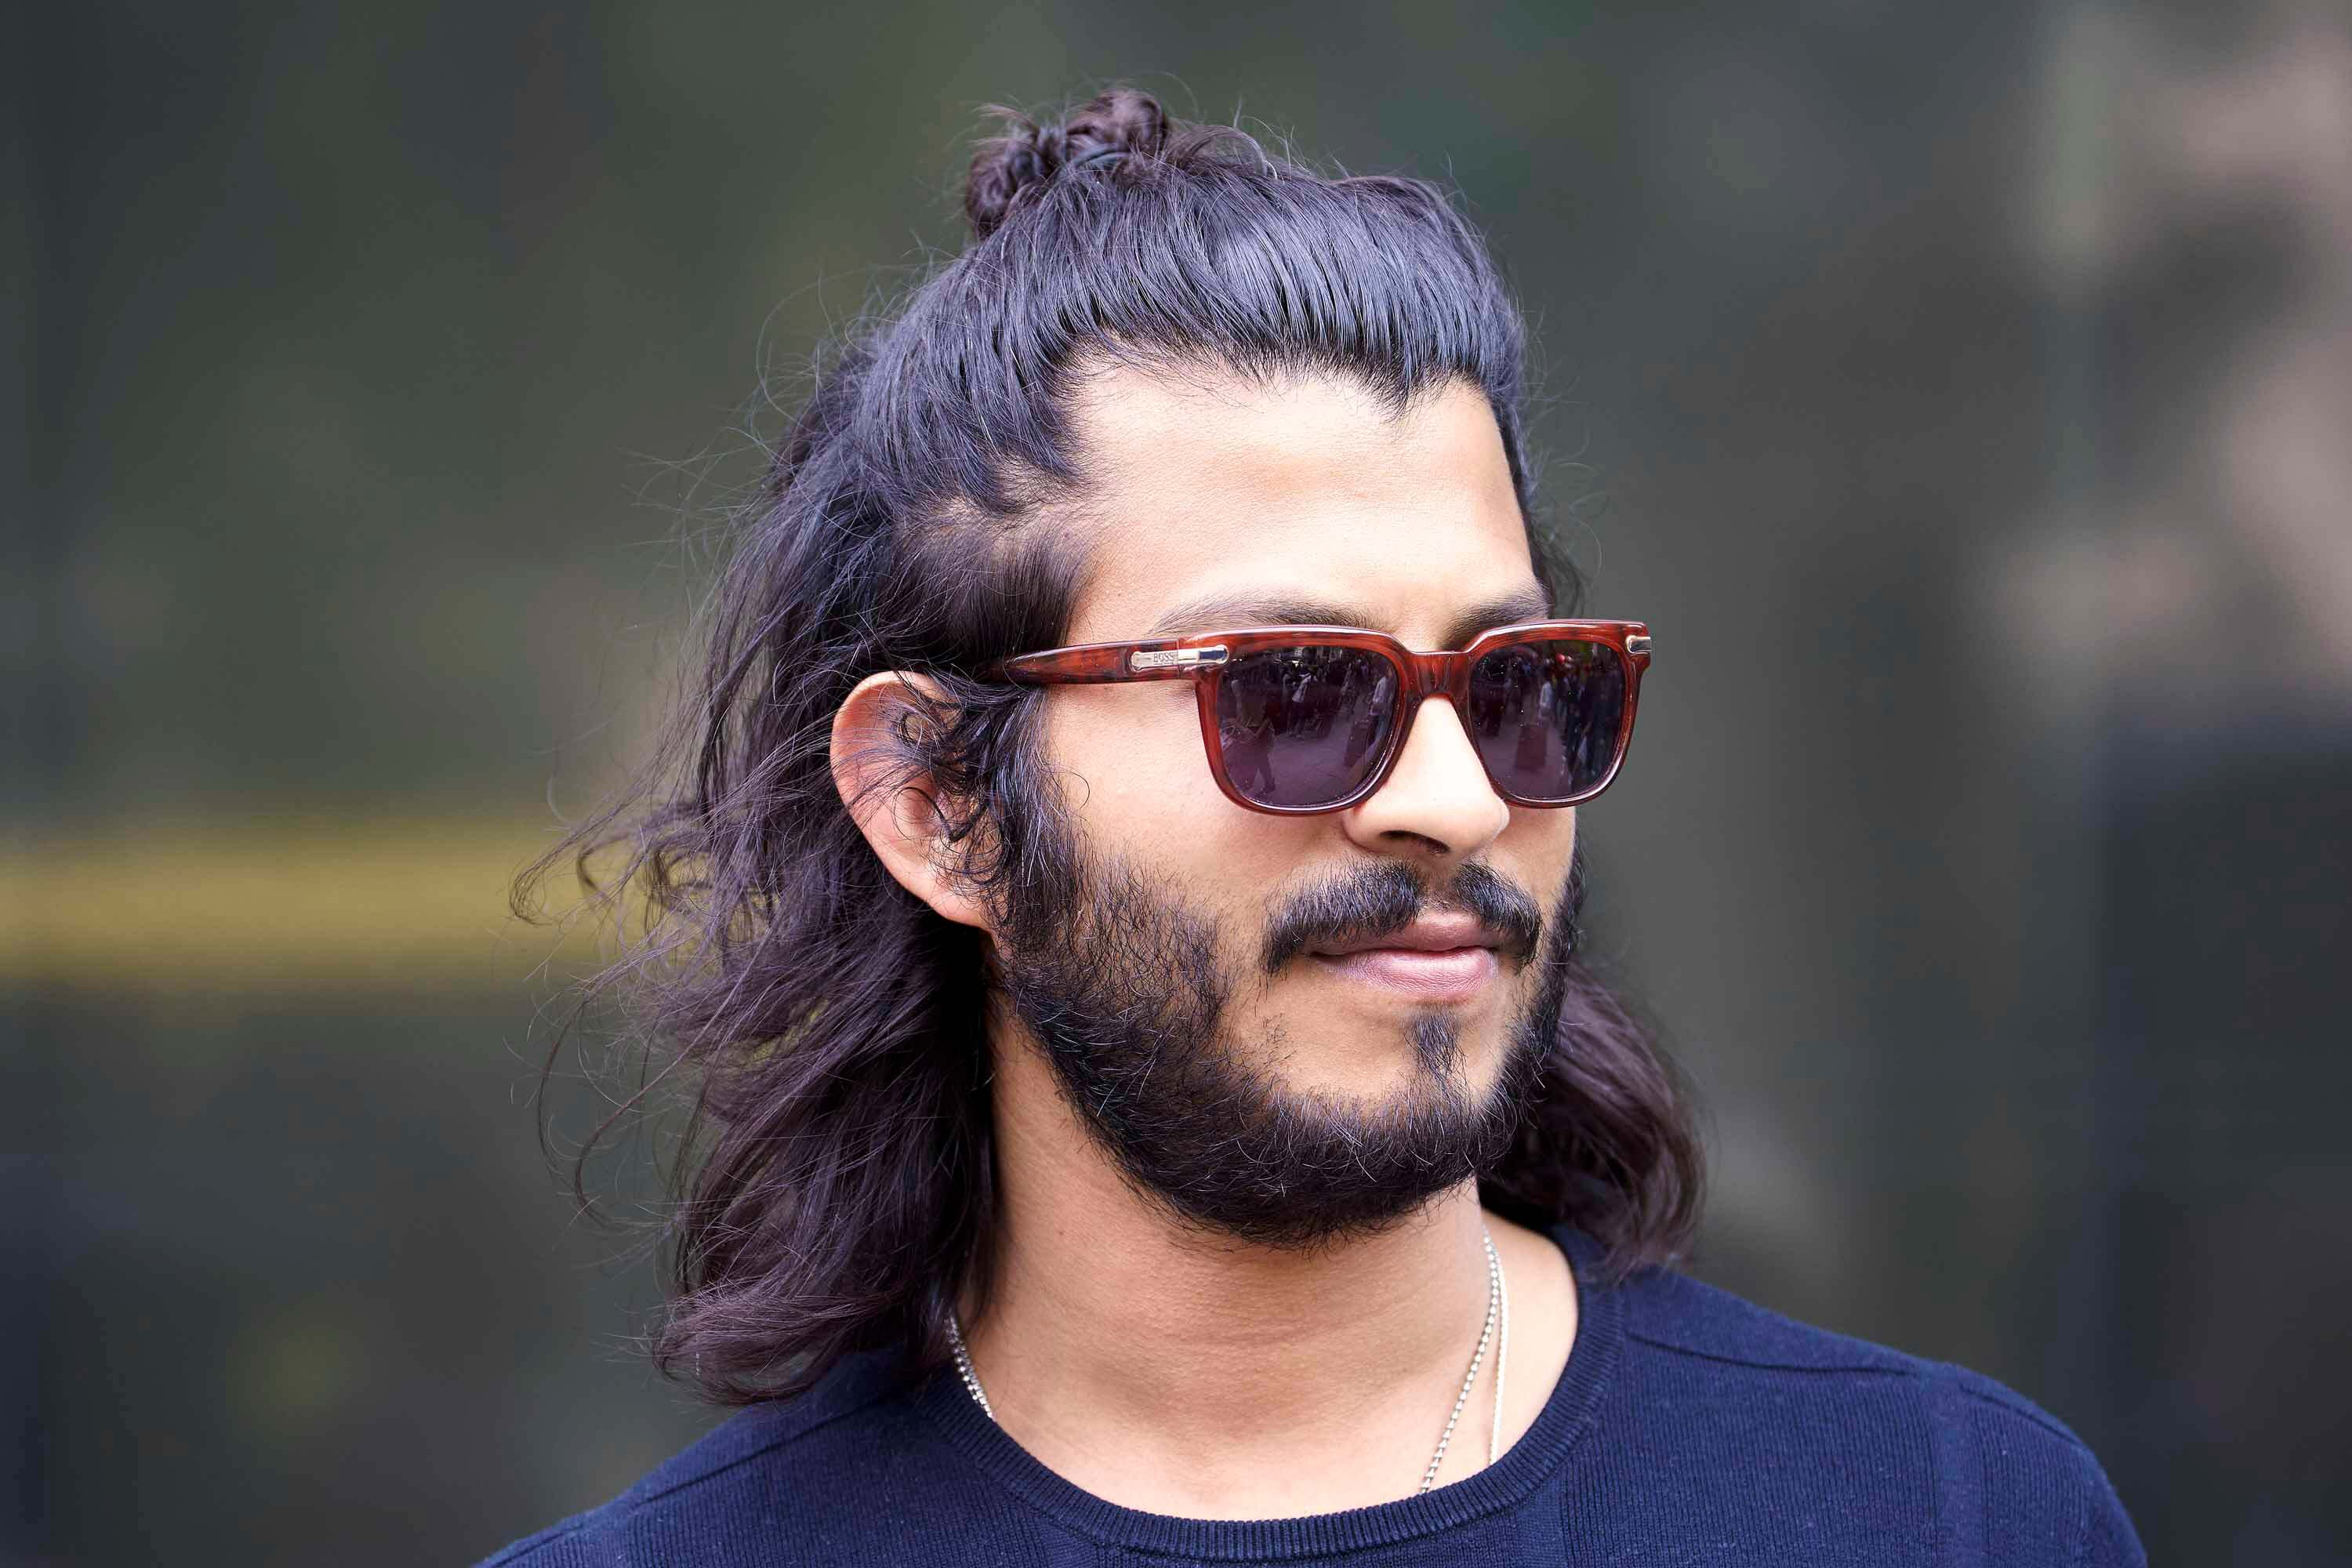 Hairstyles for Long Hair Men: 10 Cool Hairstyles to Try